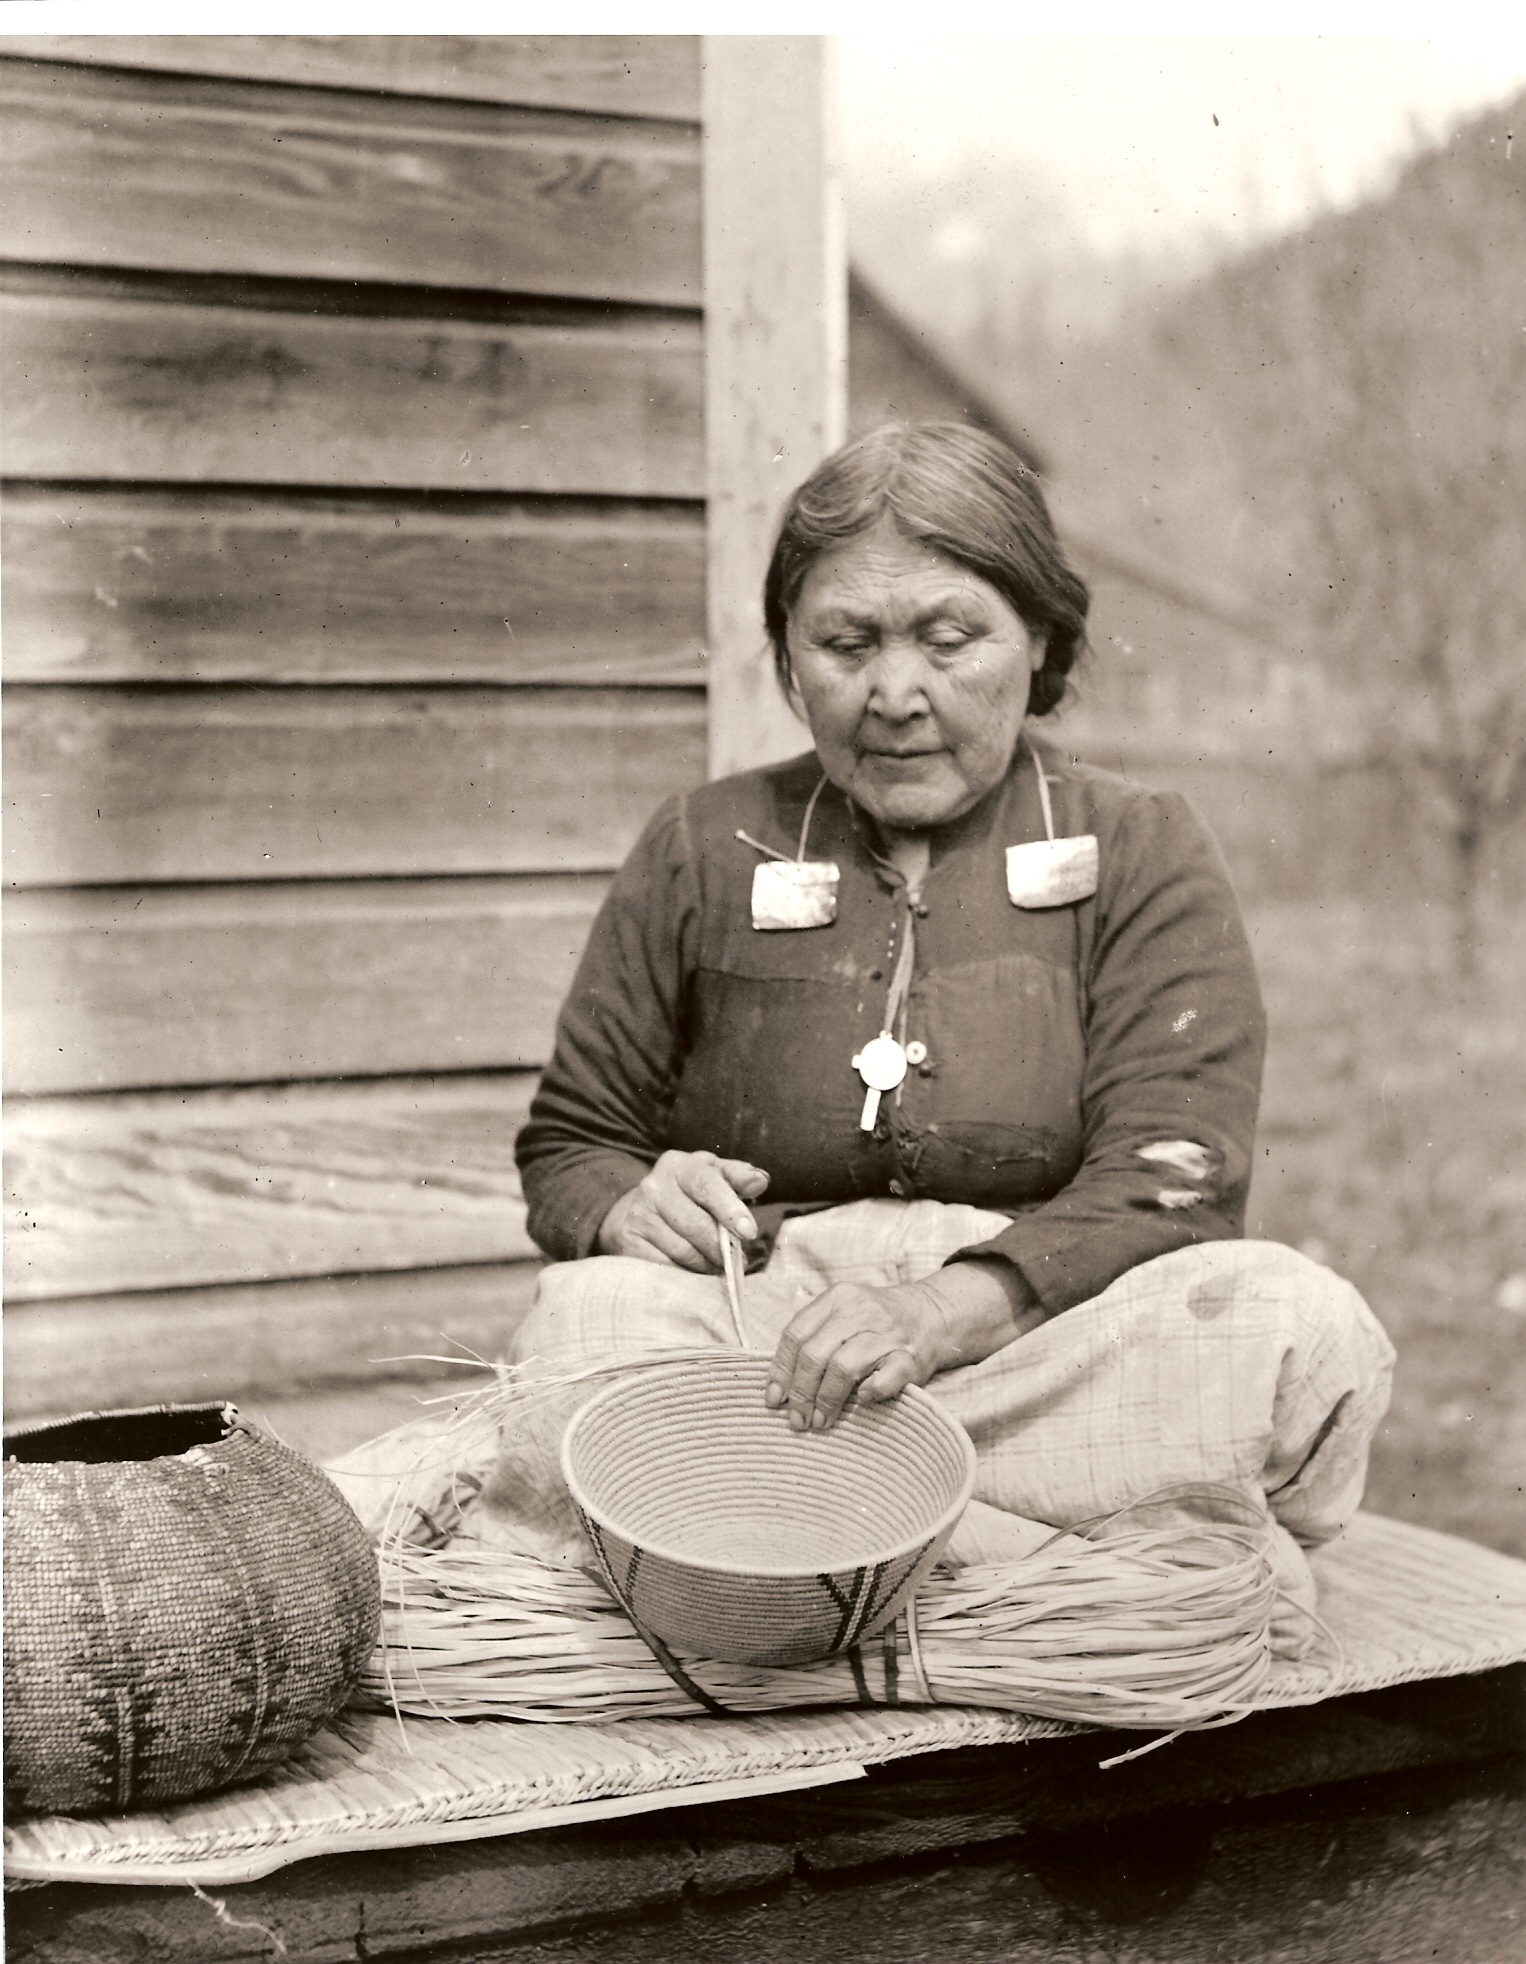 An older woman sitting on a porch weaves a basket.